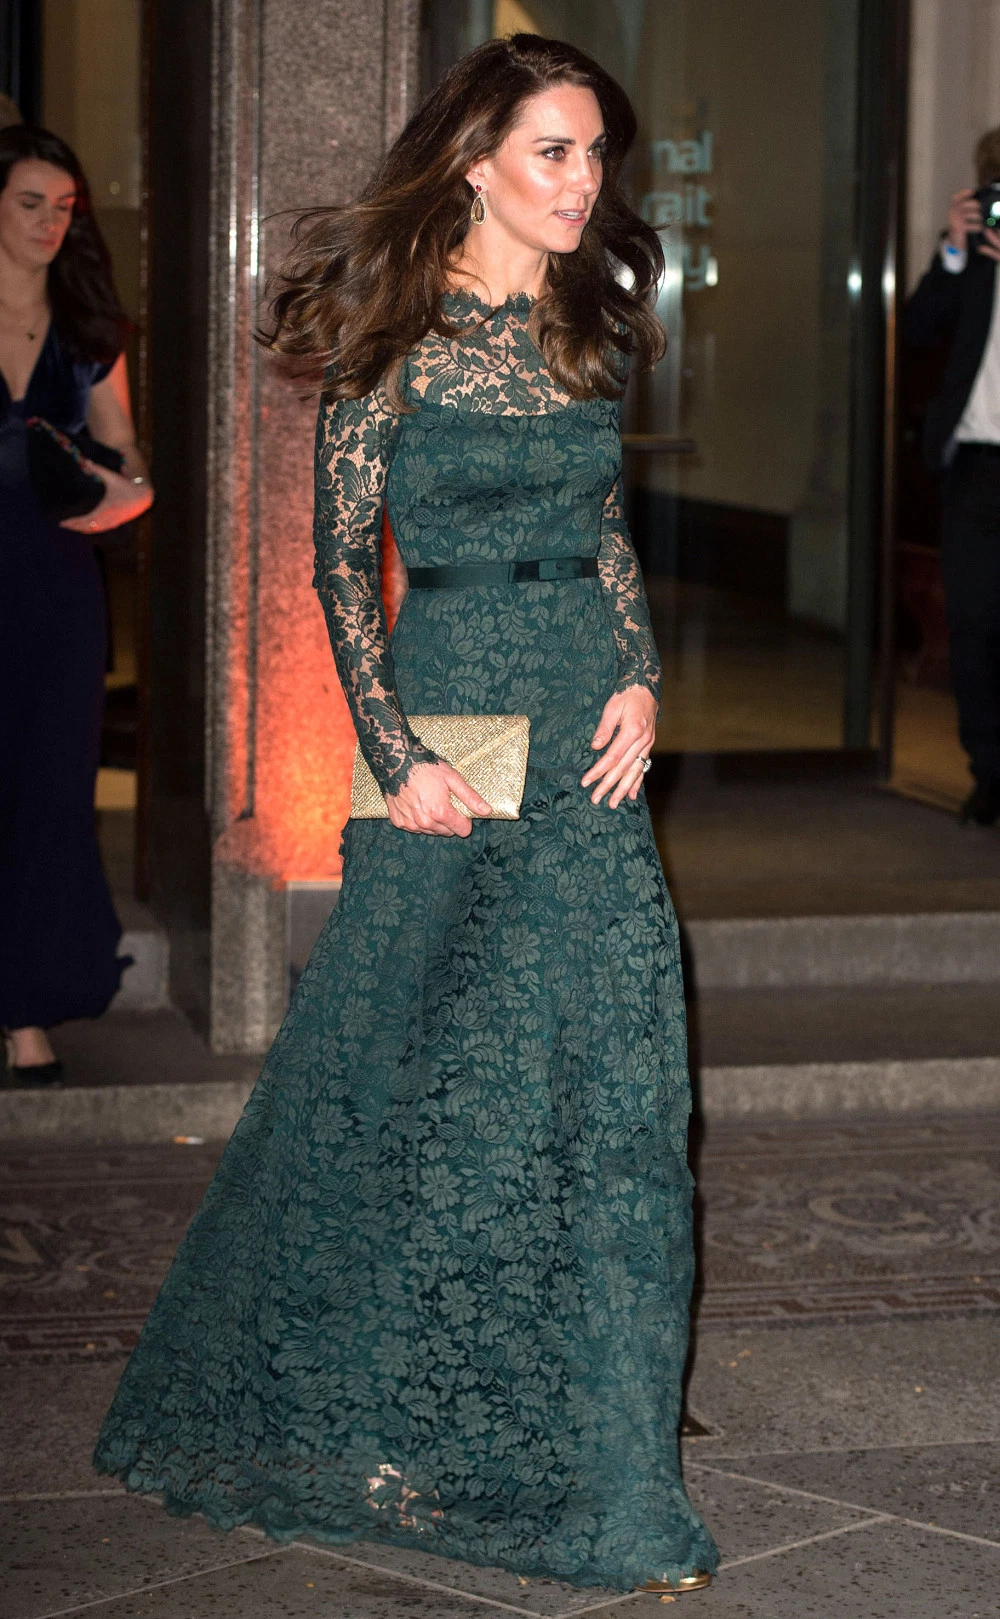 Gorgeous in green! Kate delights in Dolce & Gabbana dress